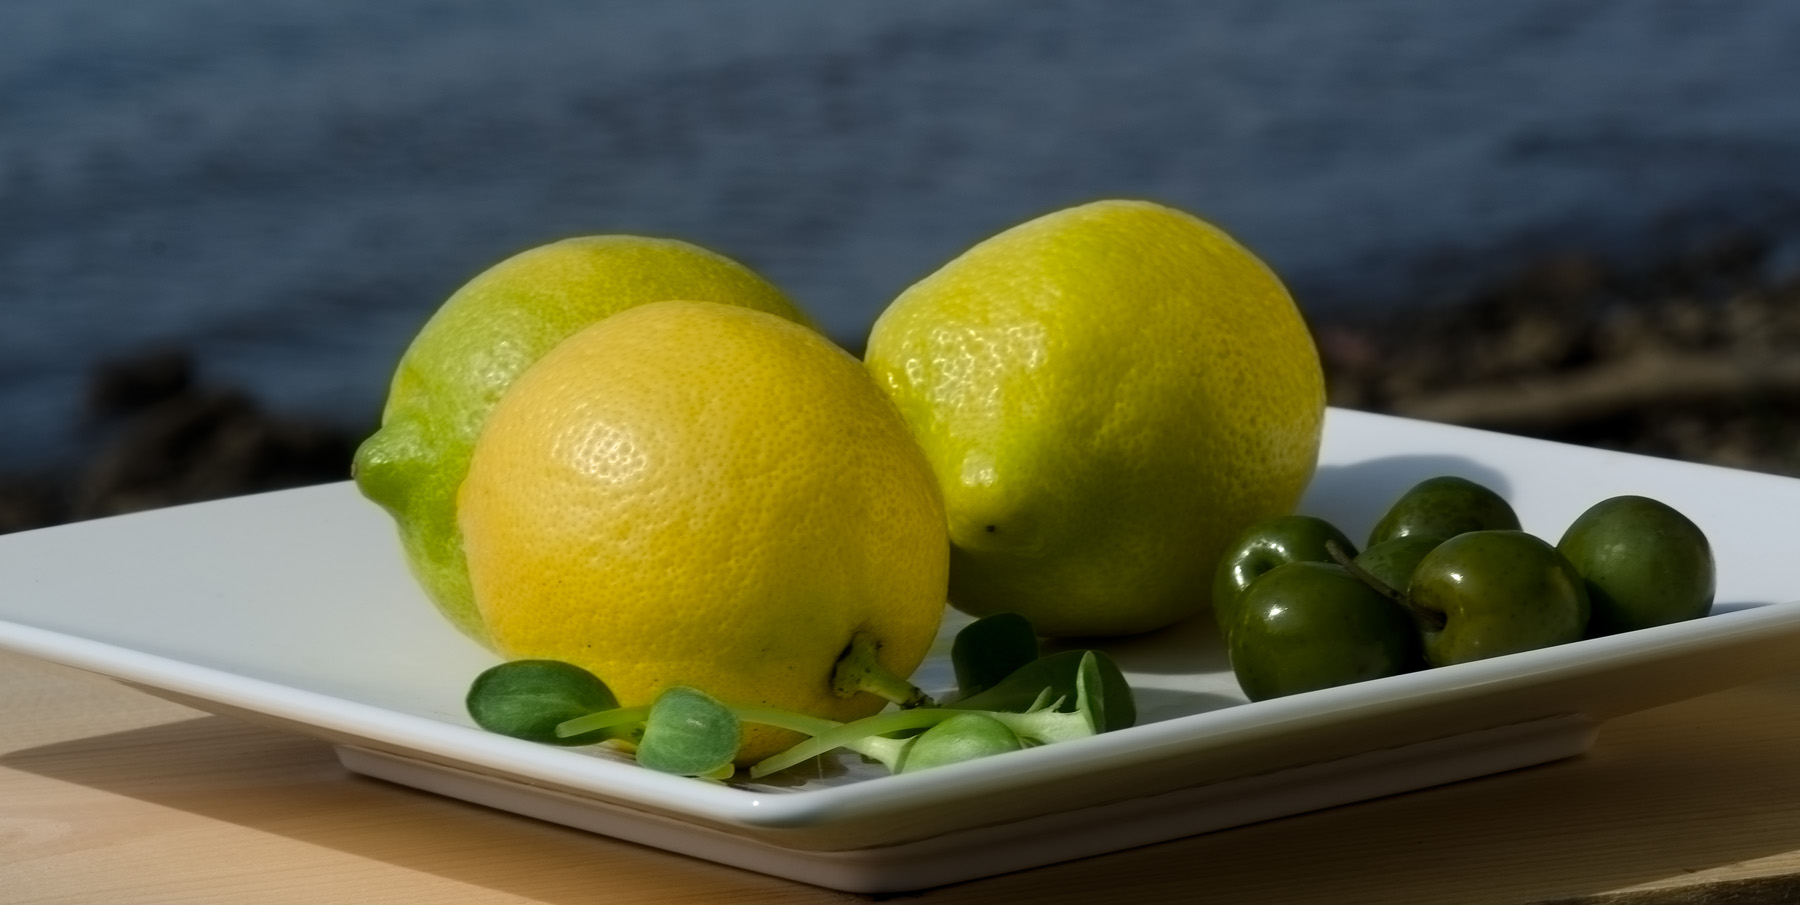 Lemons and Olives - image by Lisa Missenda